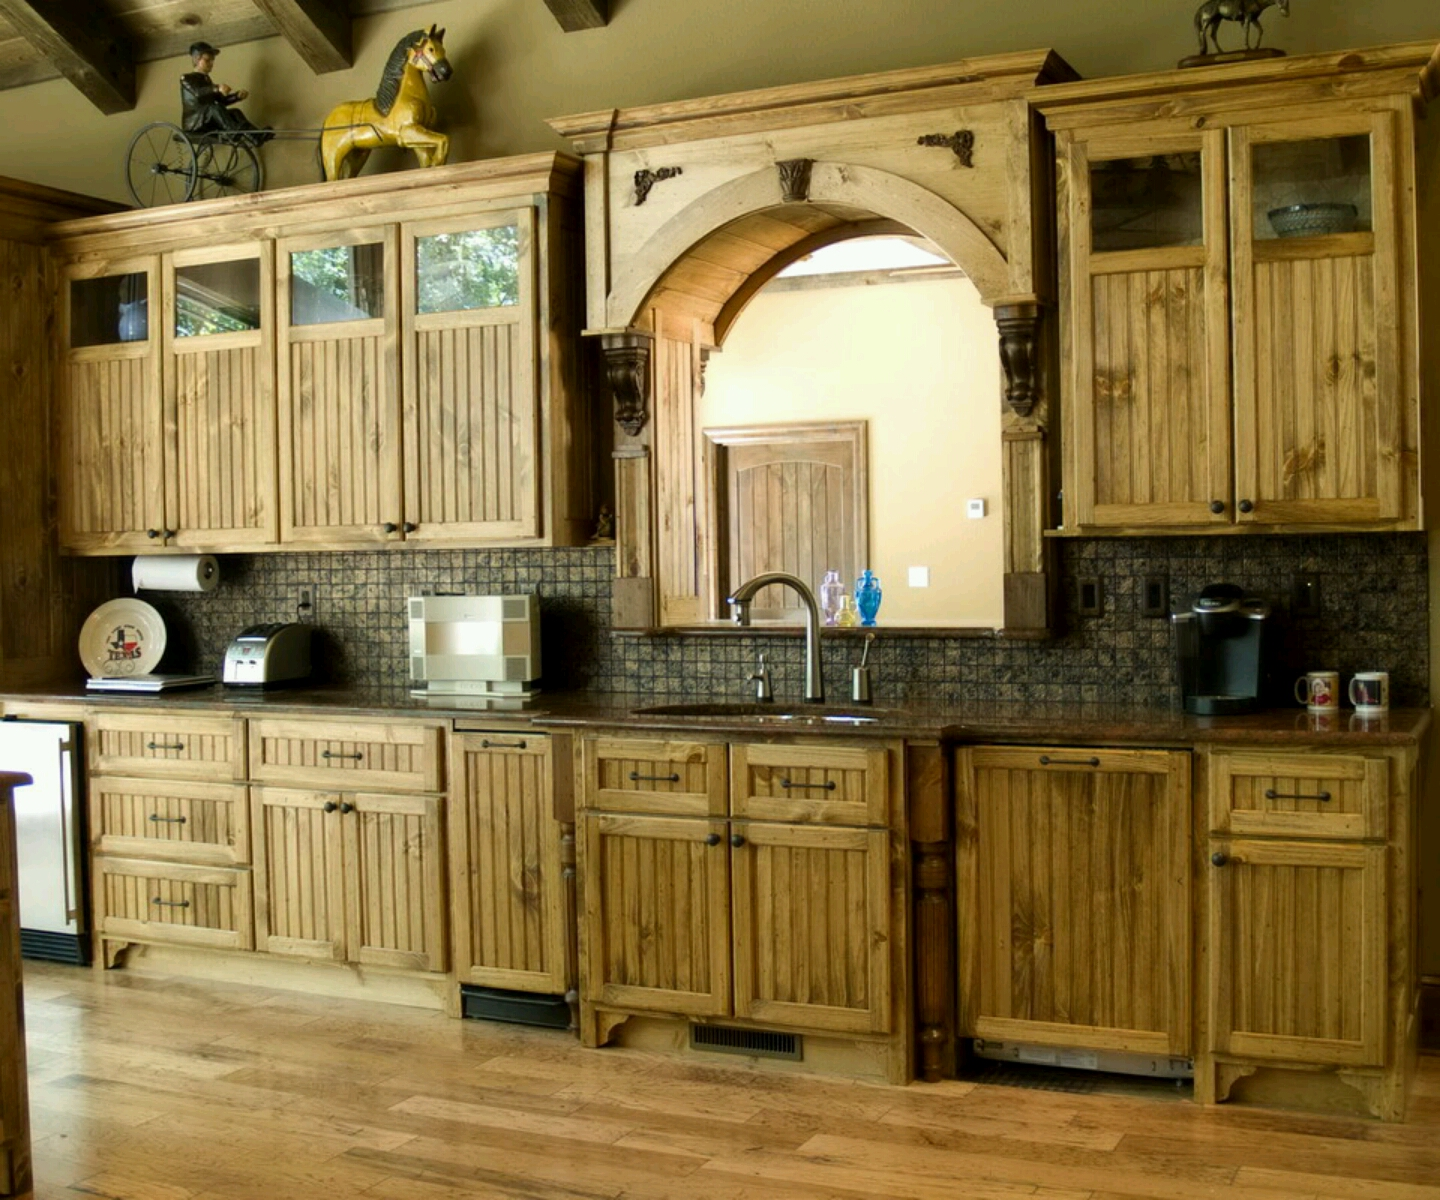 Modern wooden kitchen cabinets designs furniture gallery for Kitchen cupboard designs